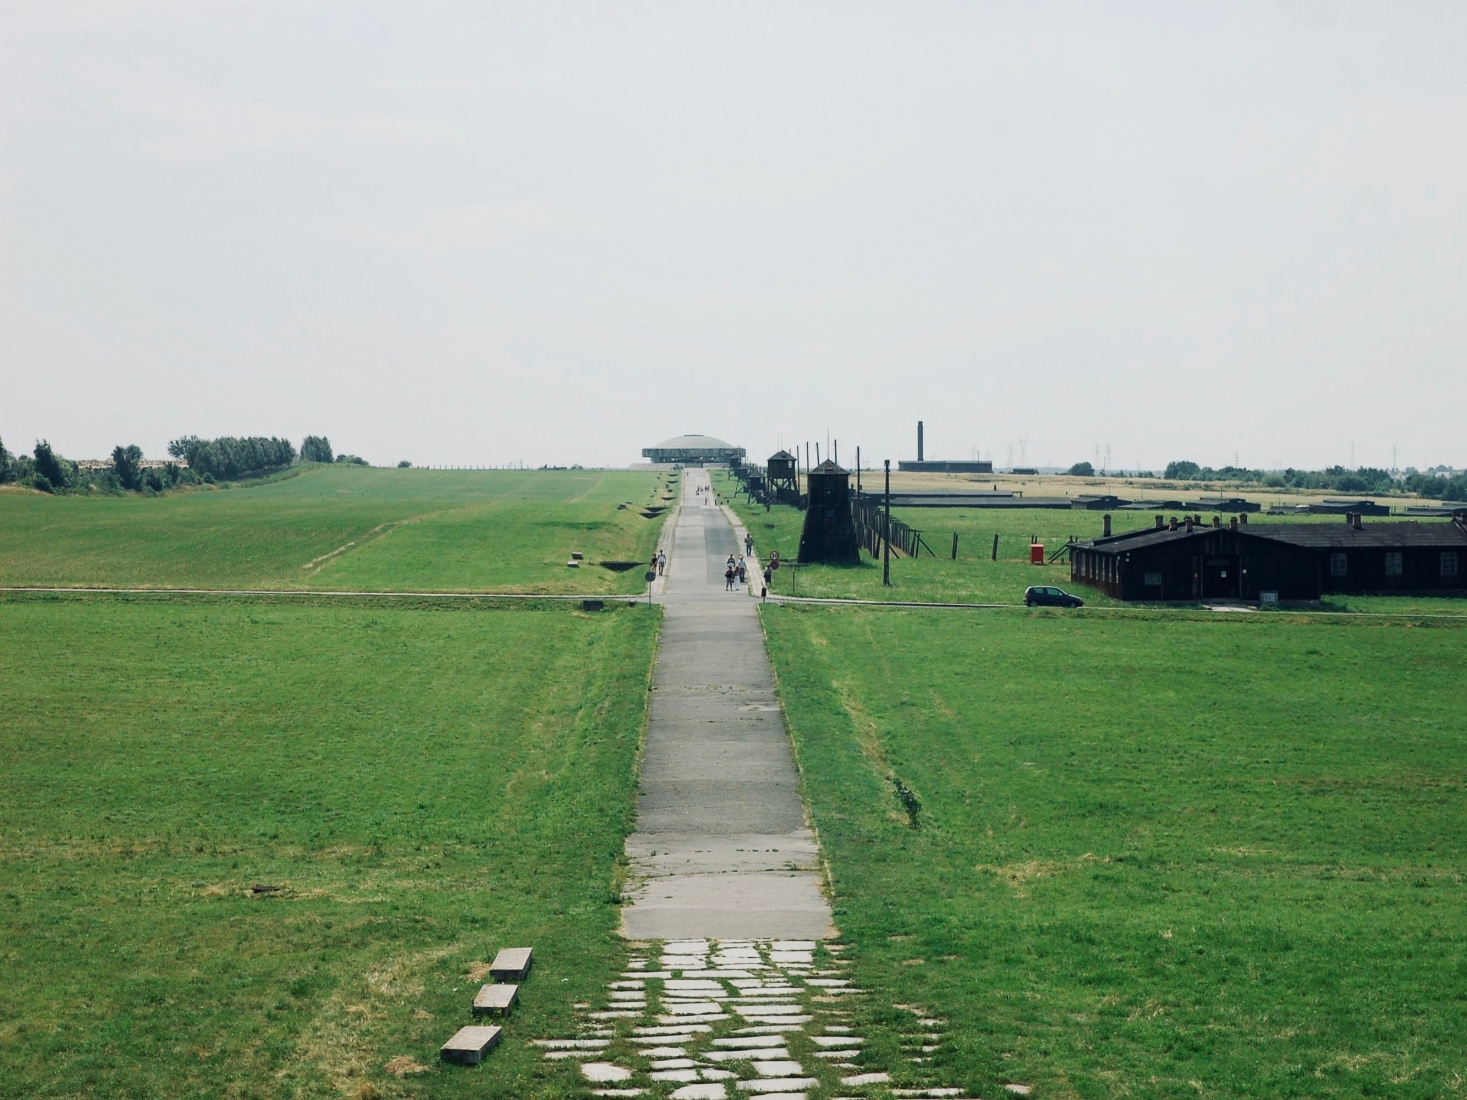 A road through the immense Majdanek concentration camp, in the distance a Victor Tolkin (Wiktor Tołkin) memorial, an urn holding the ashes of the victims, at Majdanek, outside Lublin, Poland.